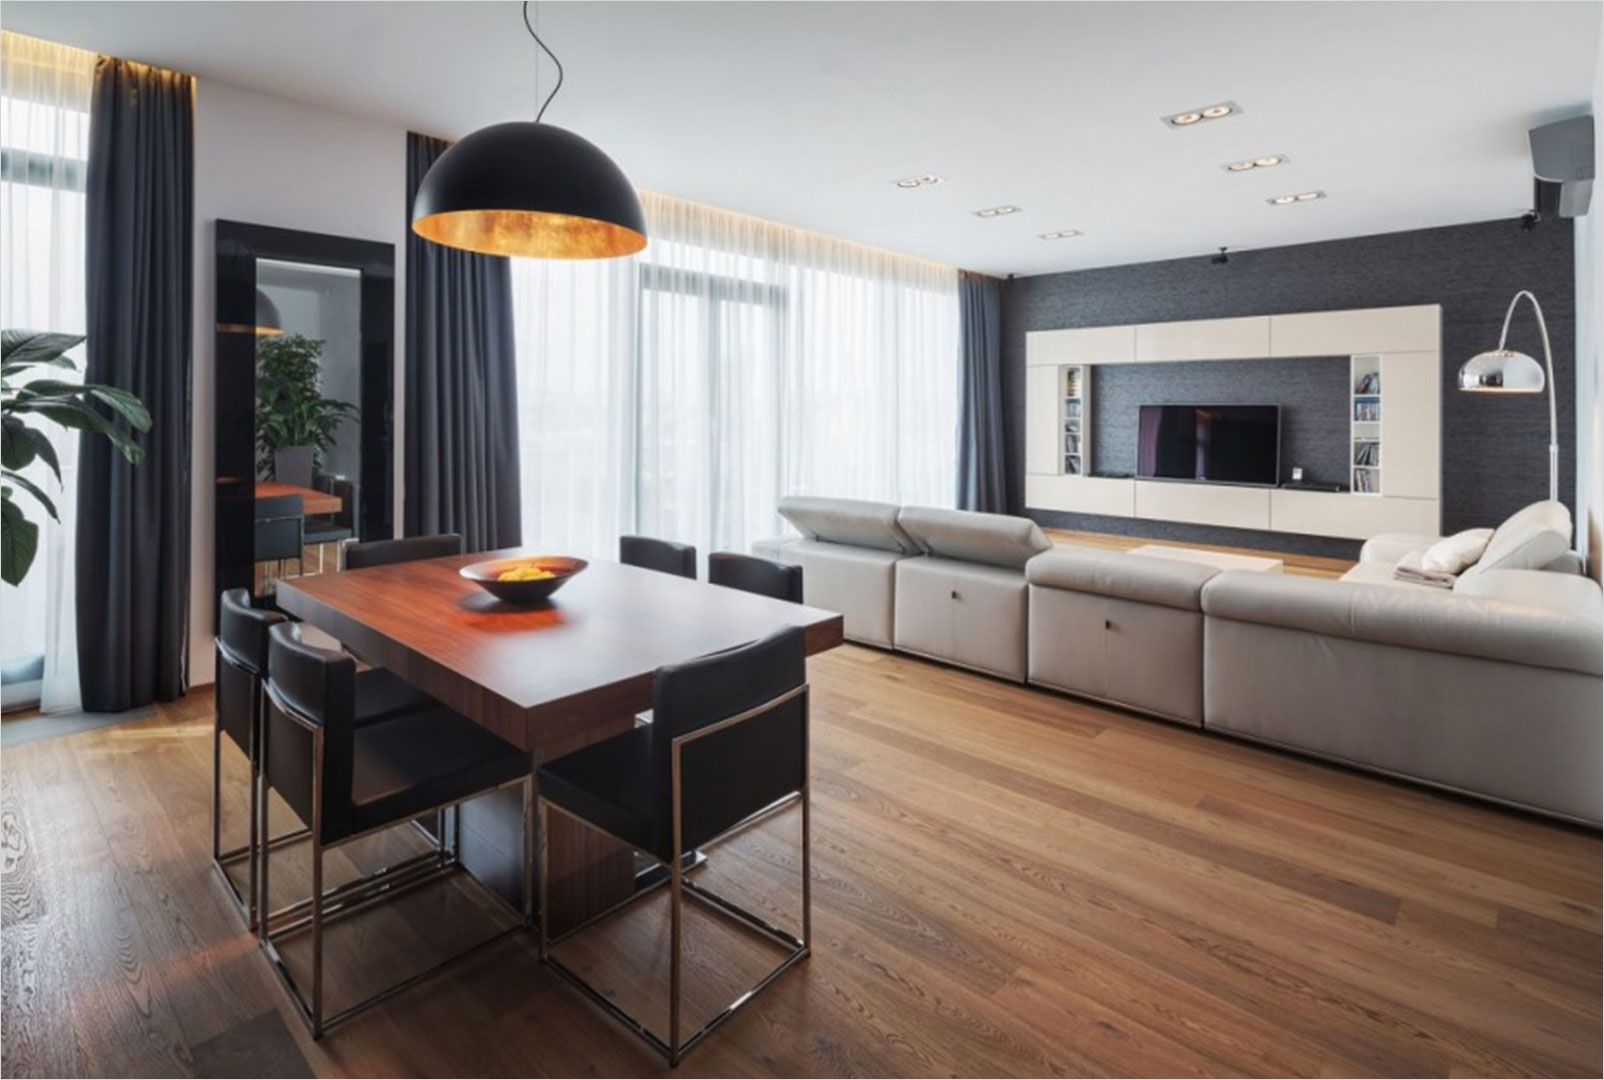 40 Perfect Modern Apartment Decor Ideas 89 Pleasant Oak Wood Flooring In Apartment Feat Modern Dining Furniture Units Under Hanging Lamp 1